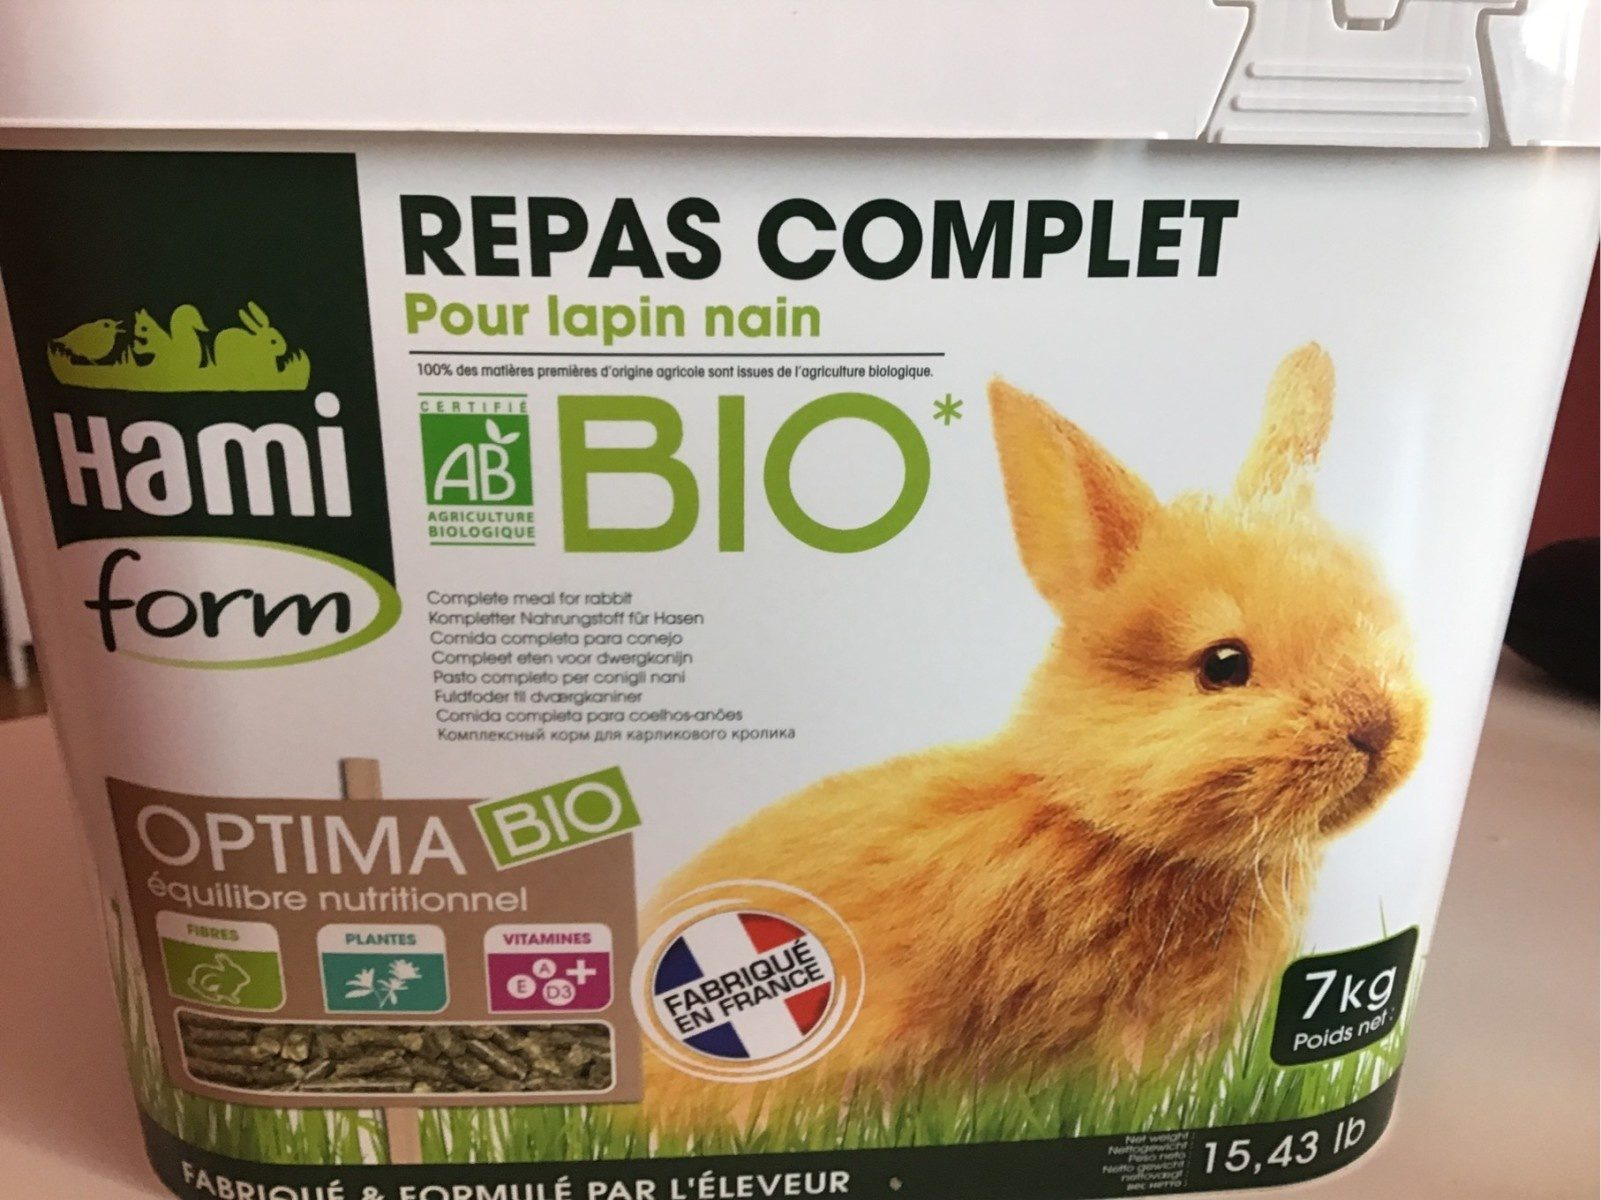 Repas complet pour lapin nain - Product